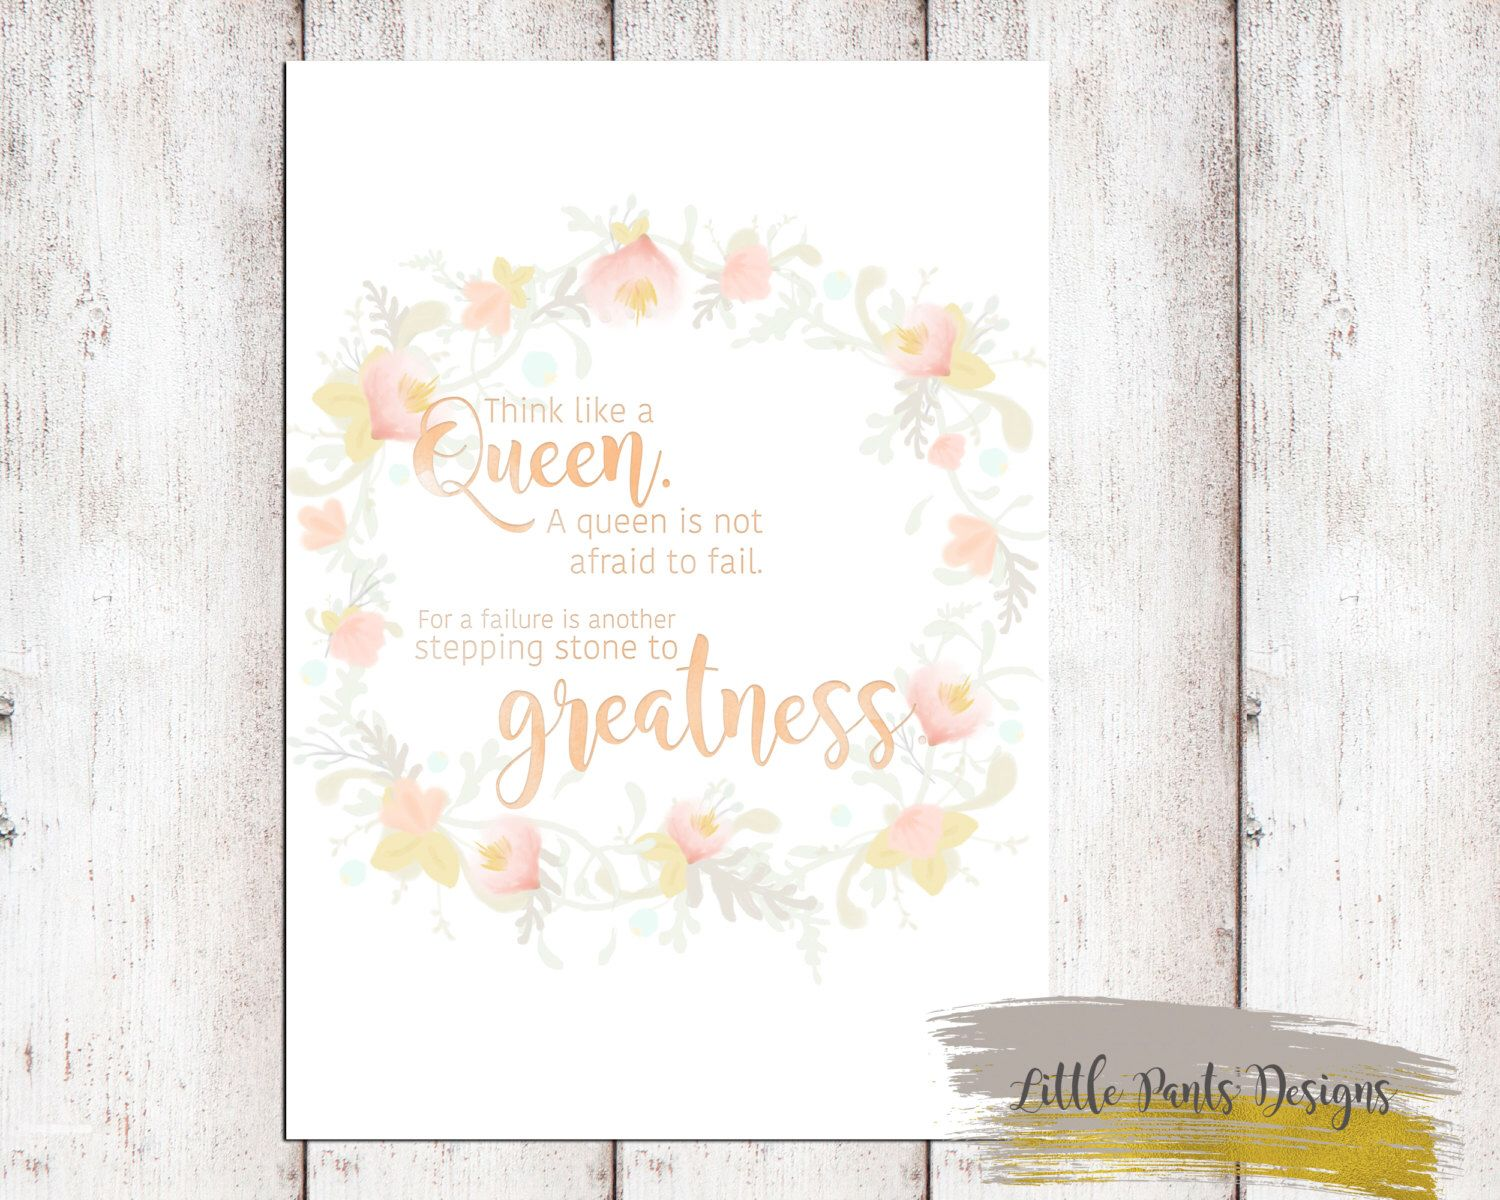 Flower crown wreath think like a queen quote poster printable flower crown wreath think like a queen quote poster printable flowers floral boho chic izmirmasajfo